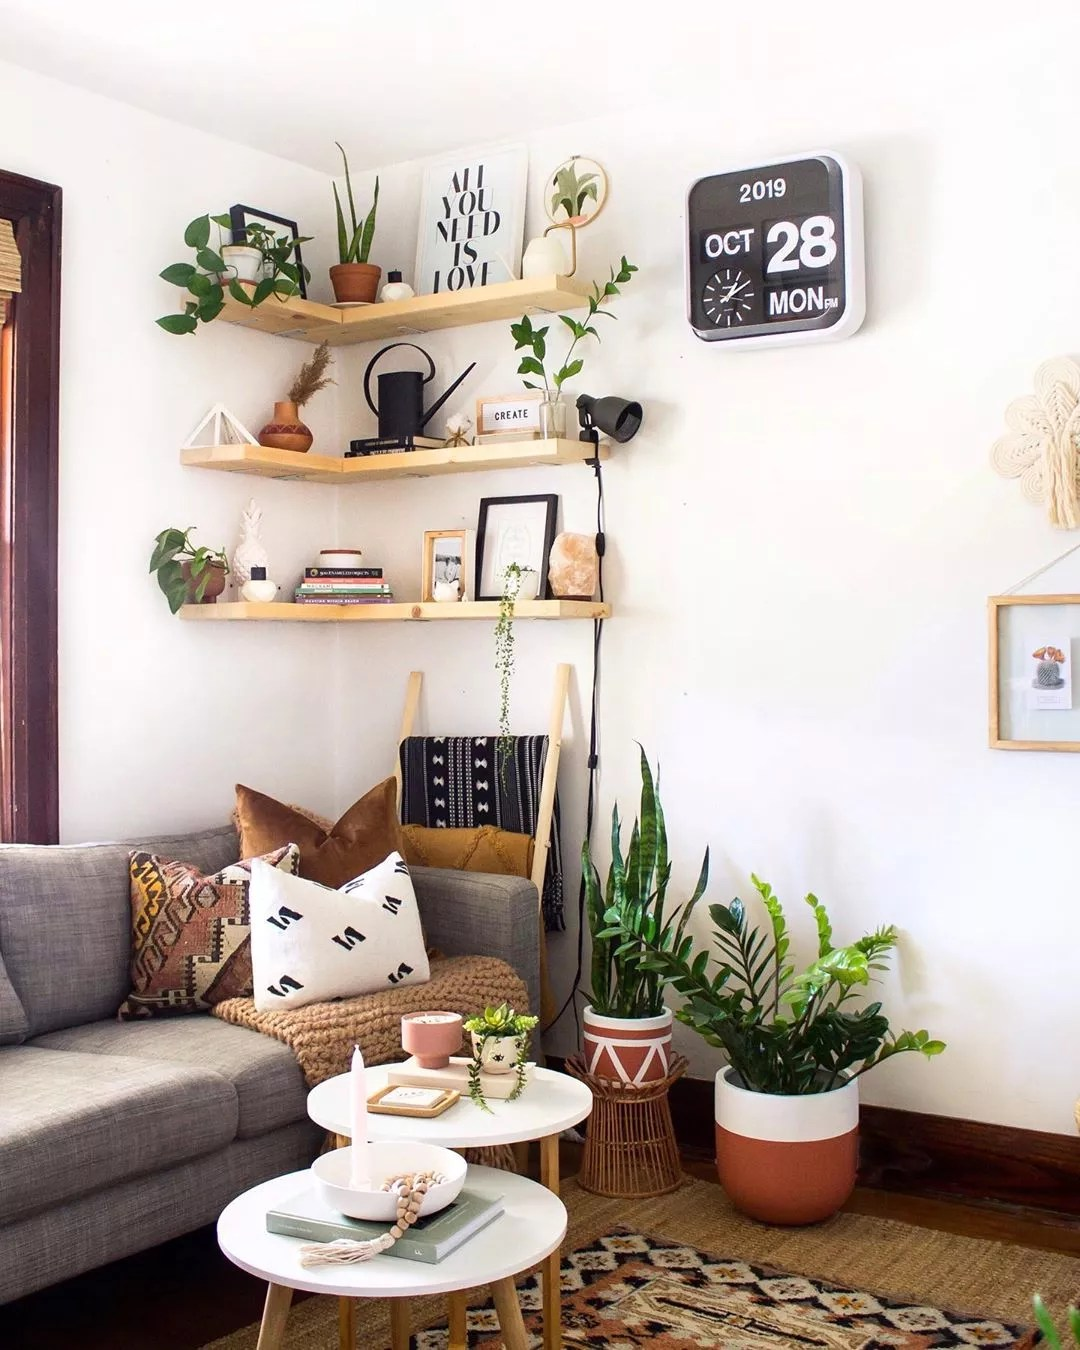 Modern design apartment with plants. Photo by Instagram user @natalie_ranae